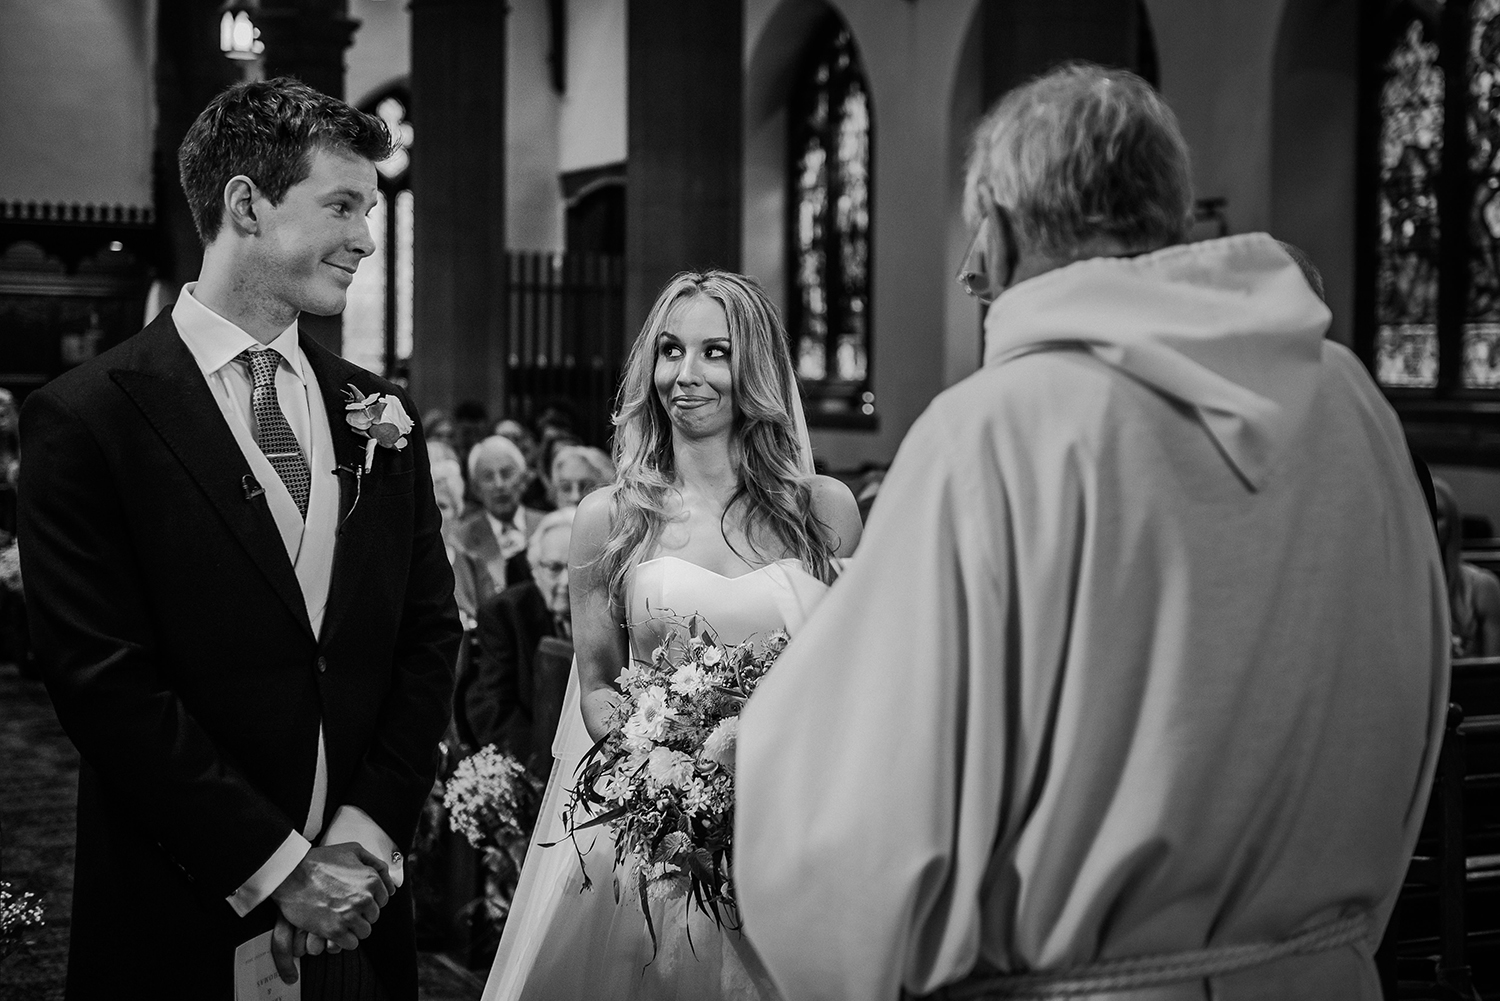 BW photo of bride and groom pulling funny faces at each other